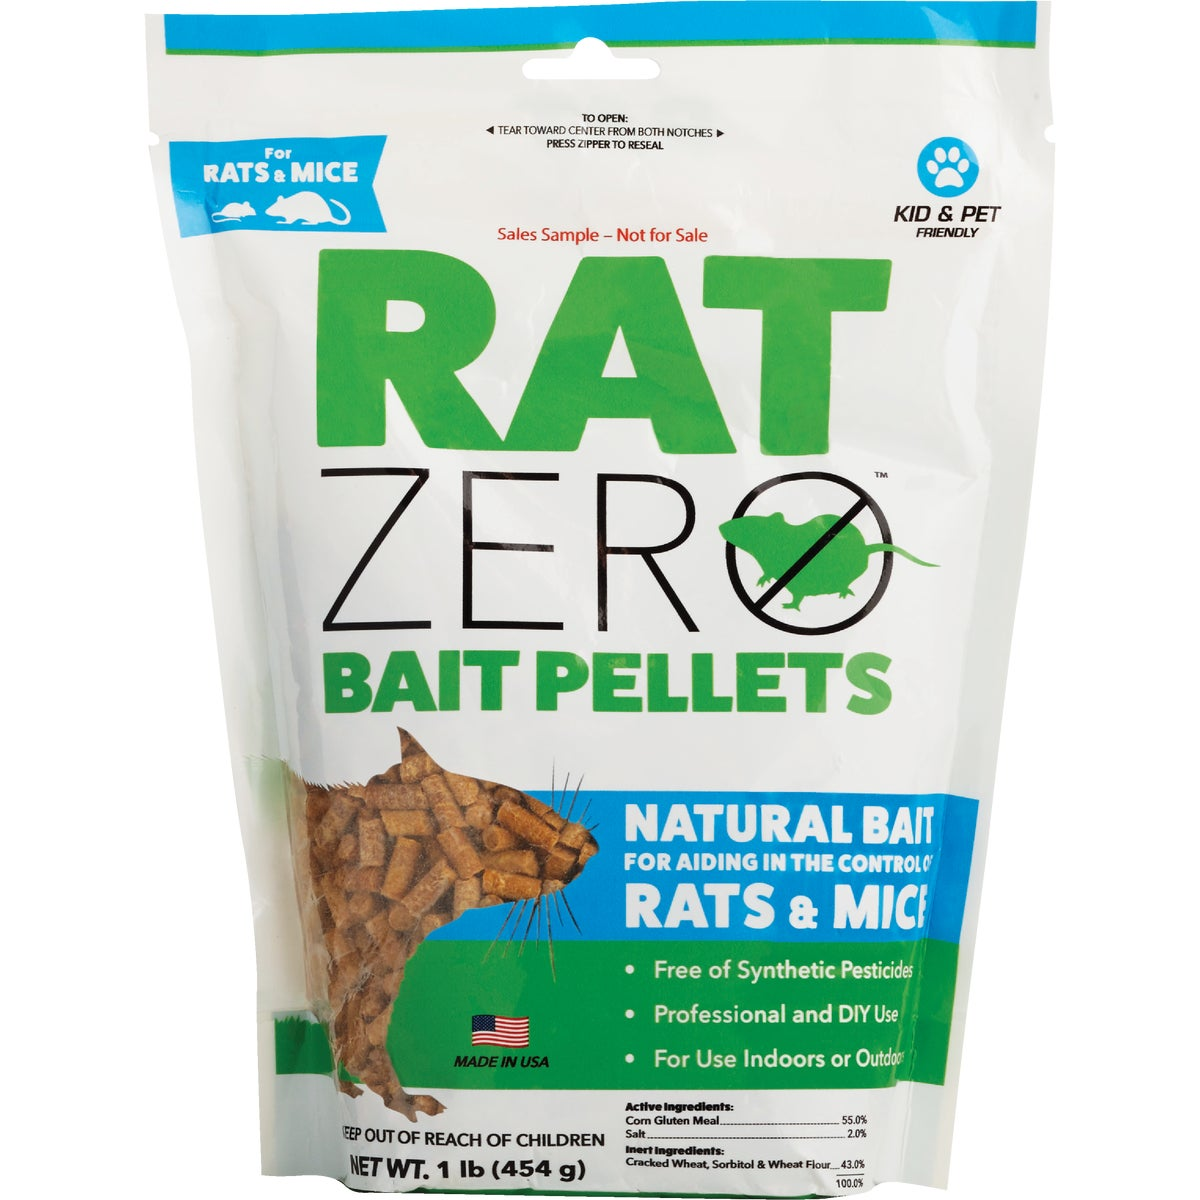 Item 705496, Bait pellet rat & mouse killer. Chemical free alternative way to treat for rodents and for use as a part of a larger system of rodent control.